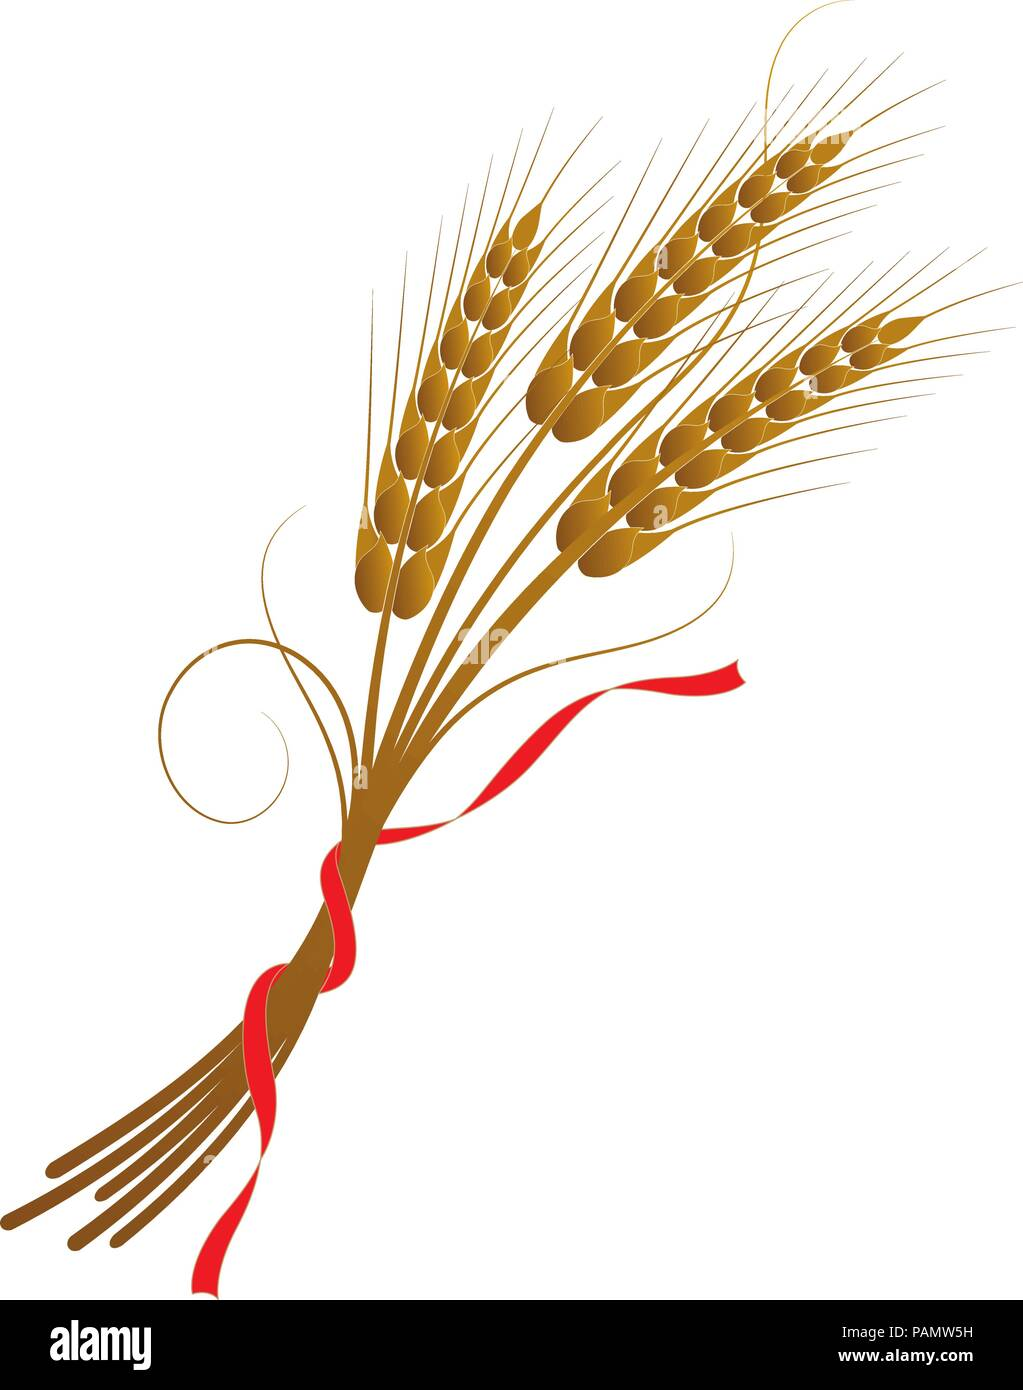 Vector illustration of wheat tied with a ribbon - Stock Vector